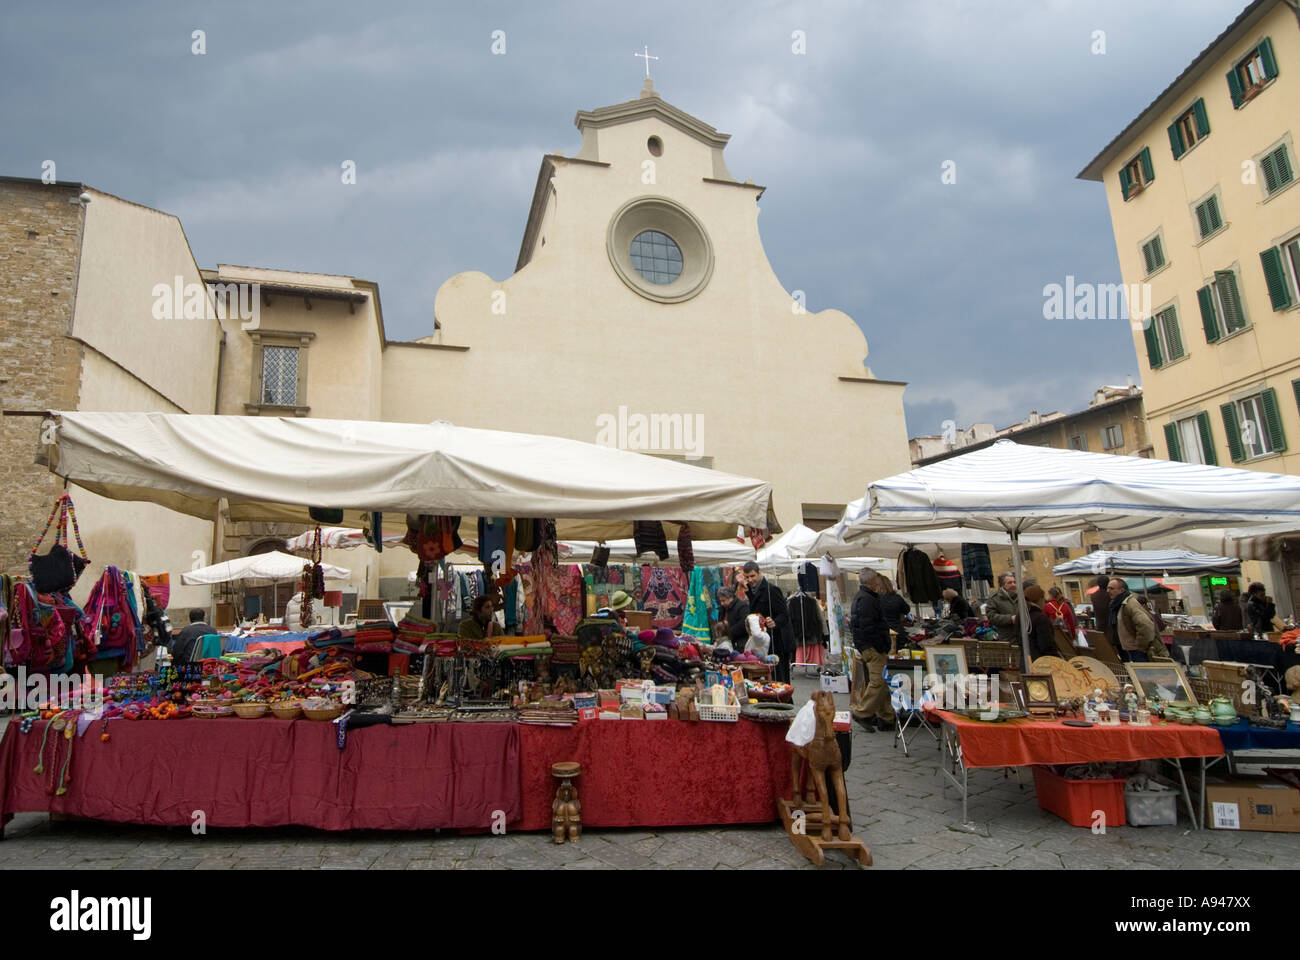 Horizontal wide angle of stalls at the Sunday market in Piazza di Santo Spirito on a stormy day. - Stock Image